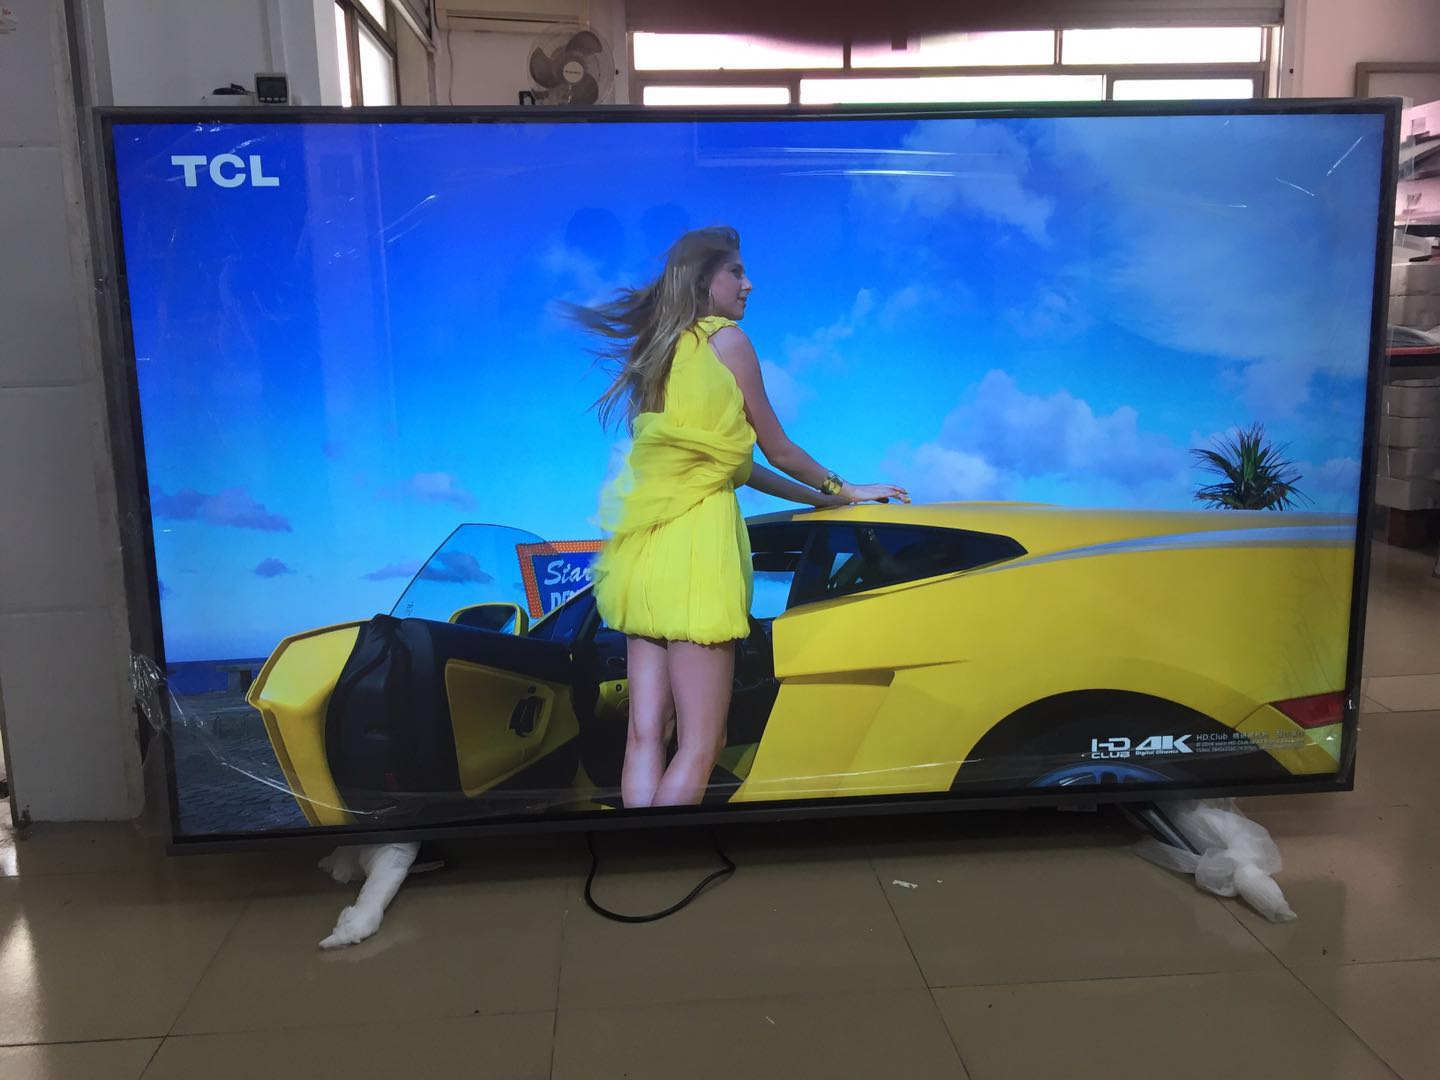 (Free Ship to Guangzhou China )smart T2 4k television TV  75 86 inch  1.5GB ram 8GB rom  android OS 7.1.1